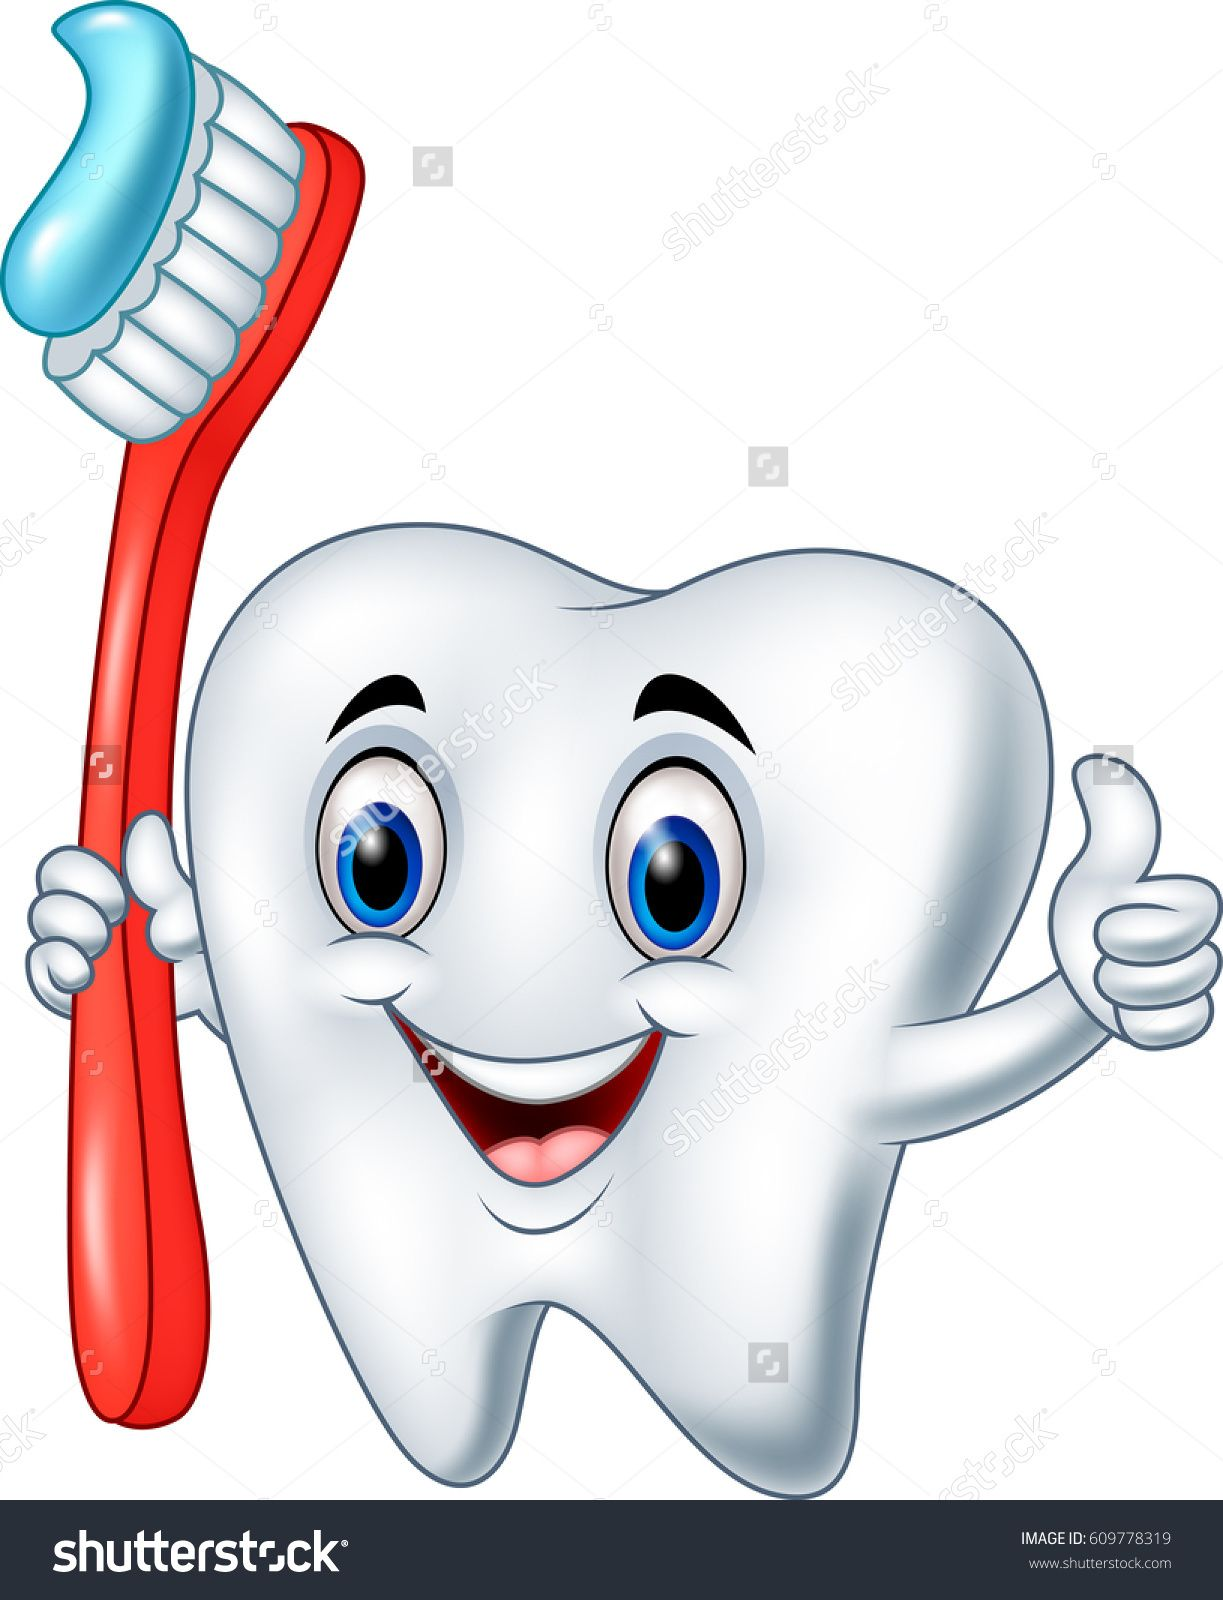 hight resolution of cartoon tooth holding a tooth brush giving thumb up